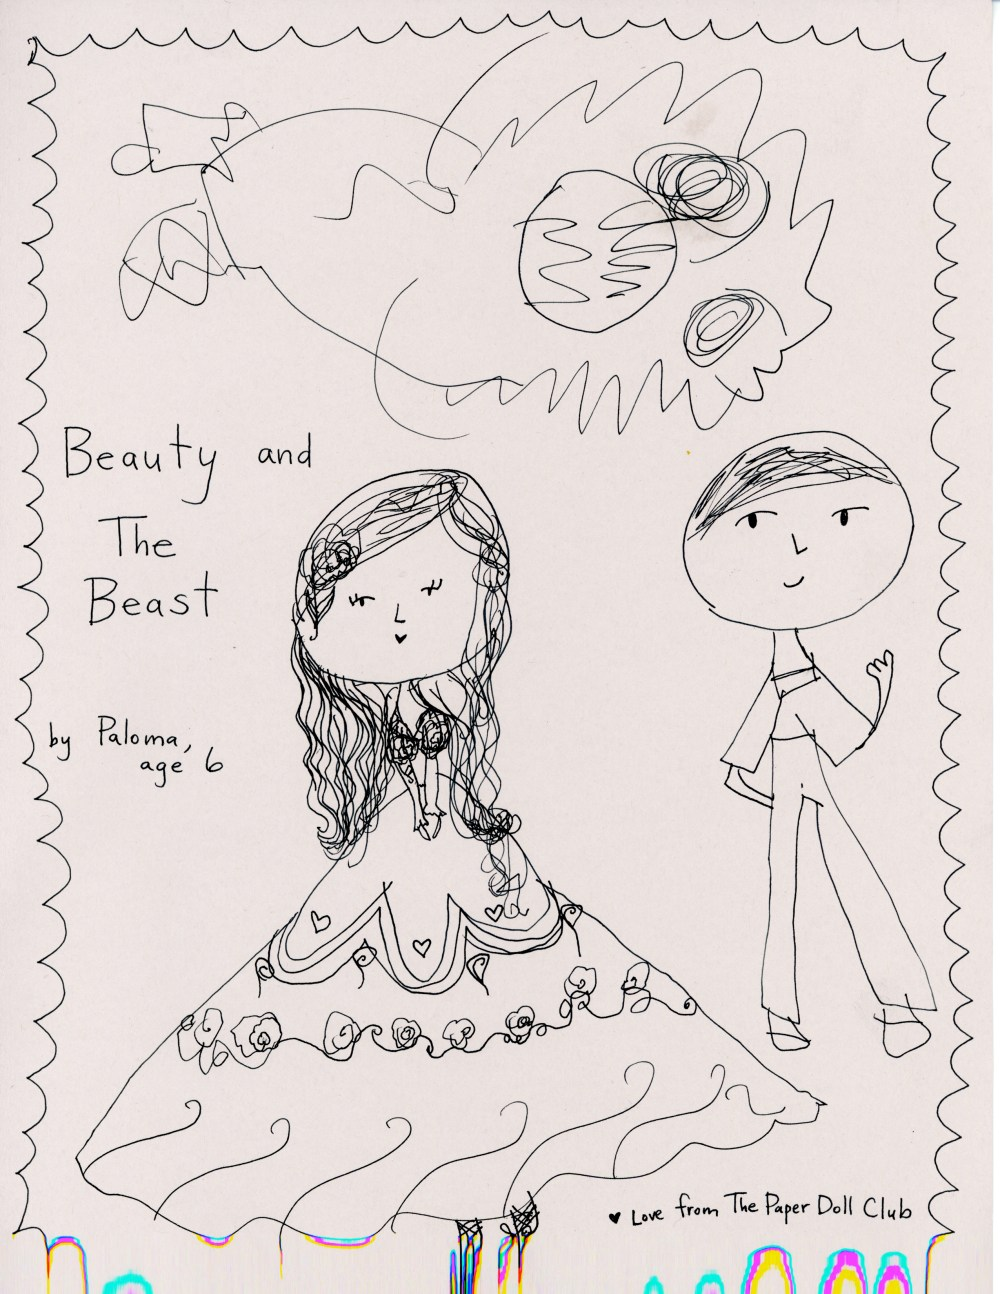 Beauty and the Beast copy